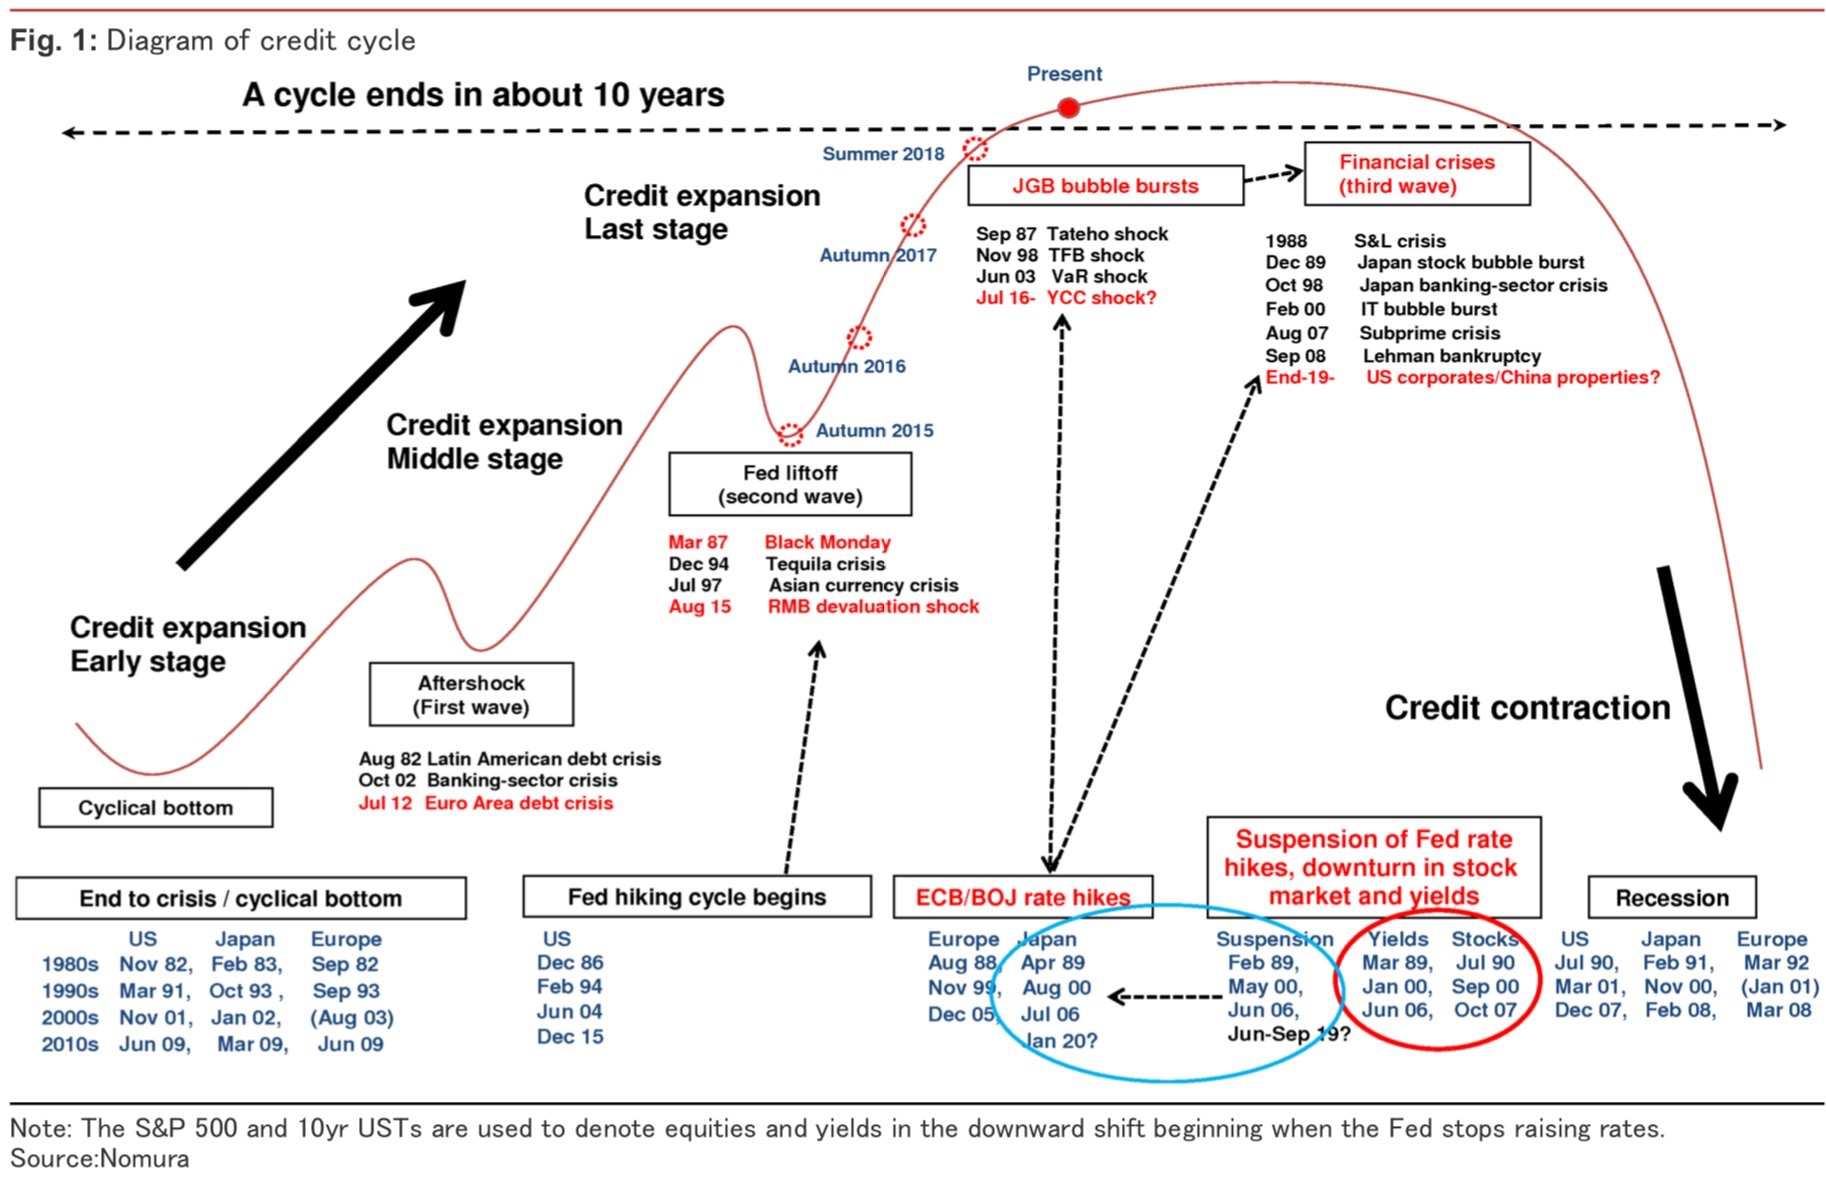 A 10-year credit cycle comes to an end